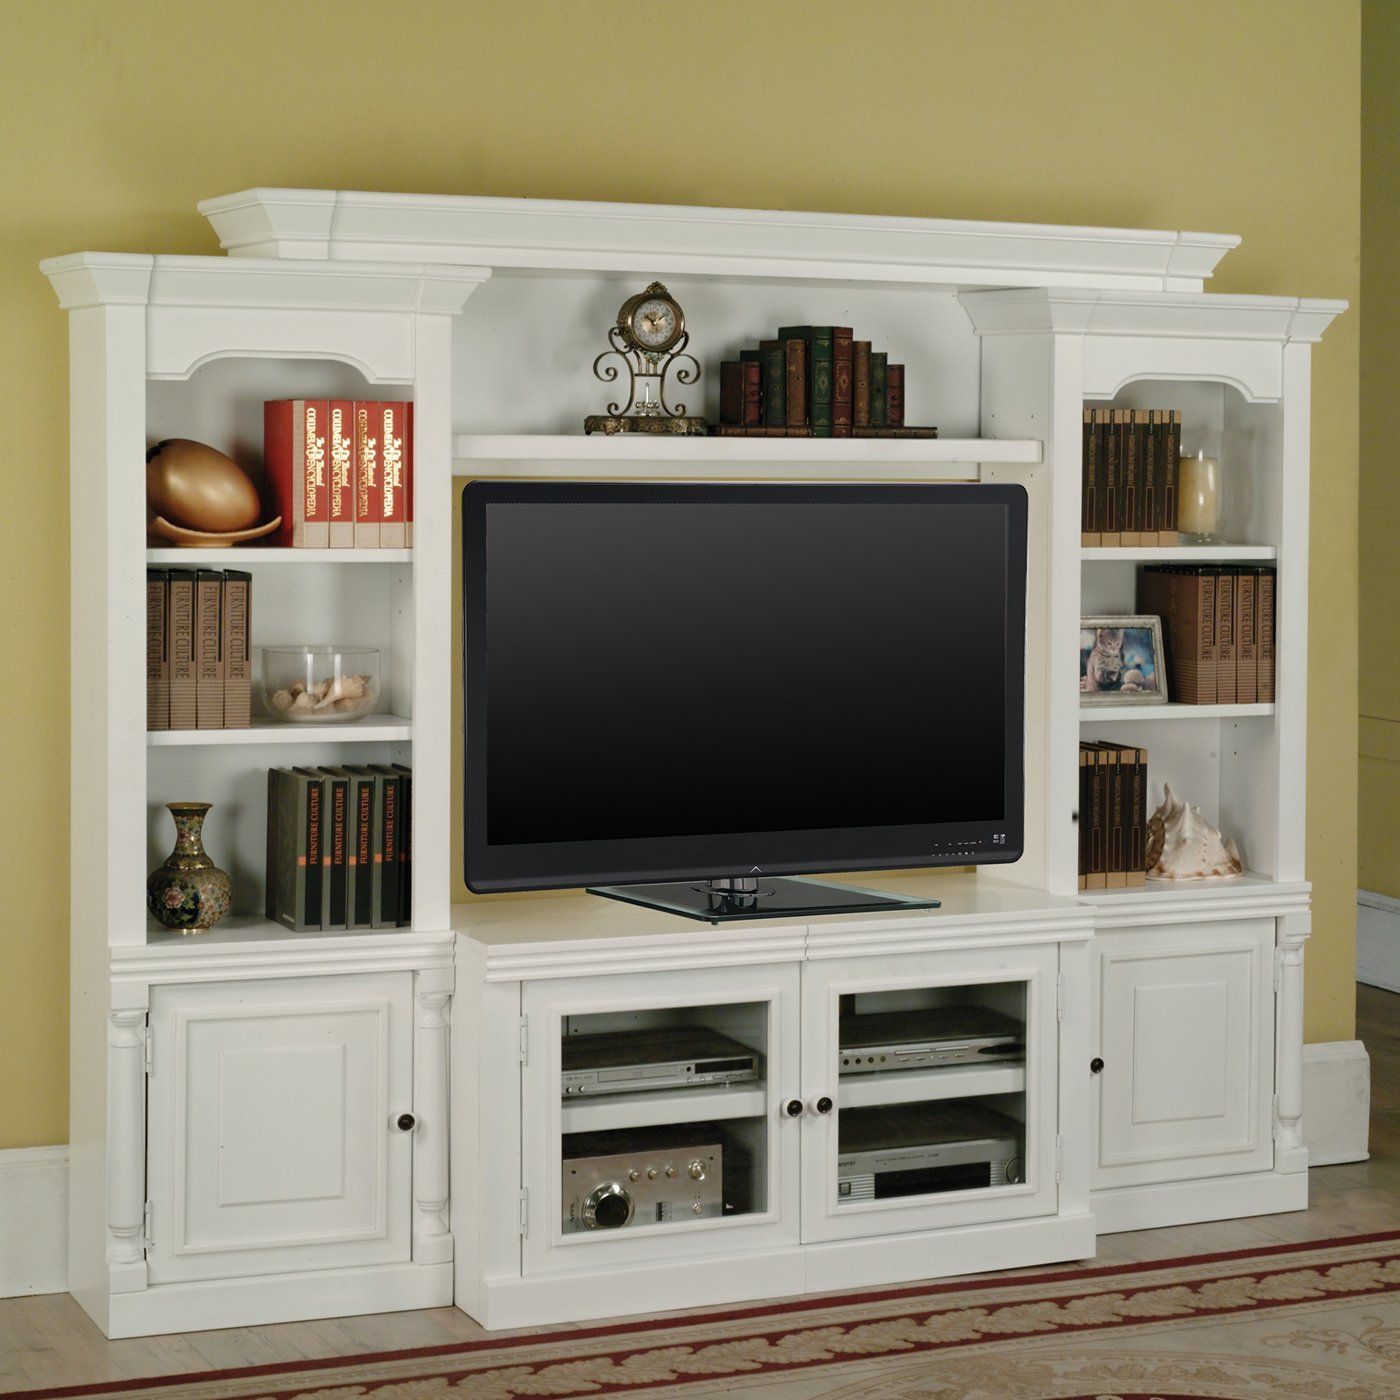 58+ Awesome DIY Industrial Furniture Entertainment Center ...